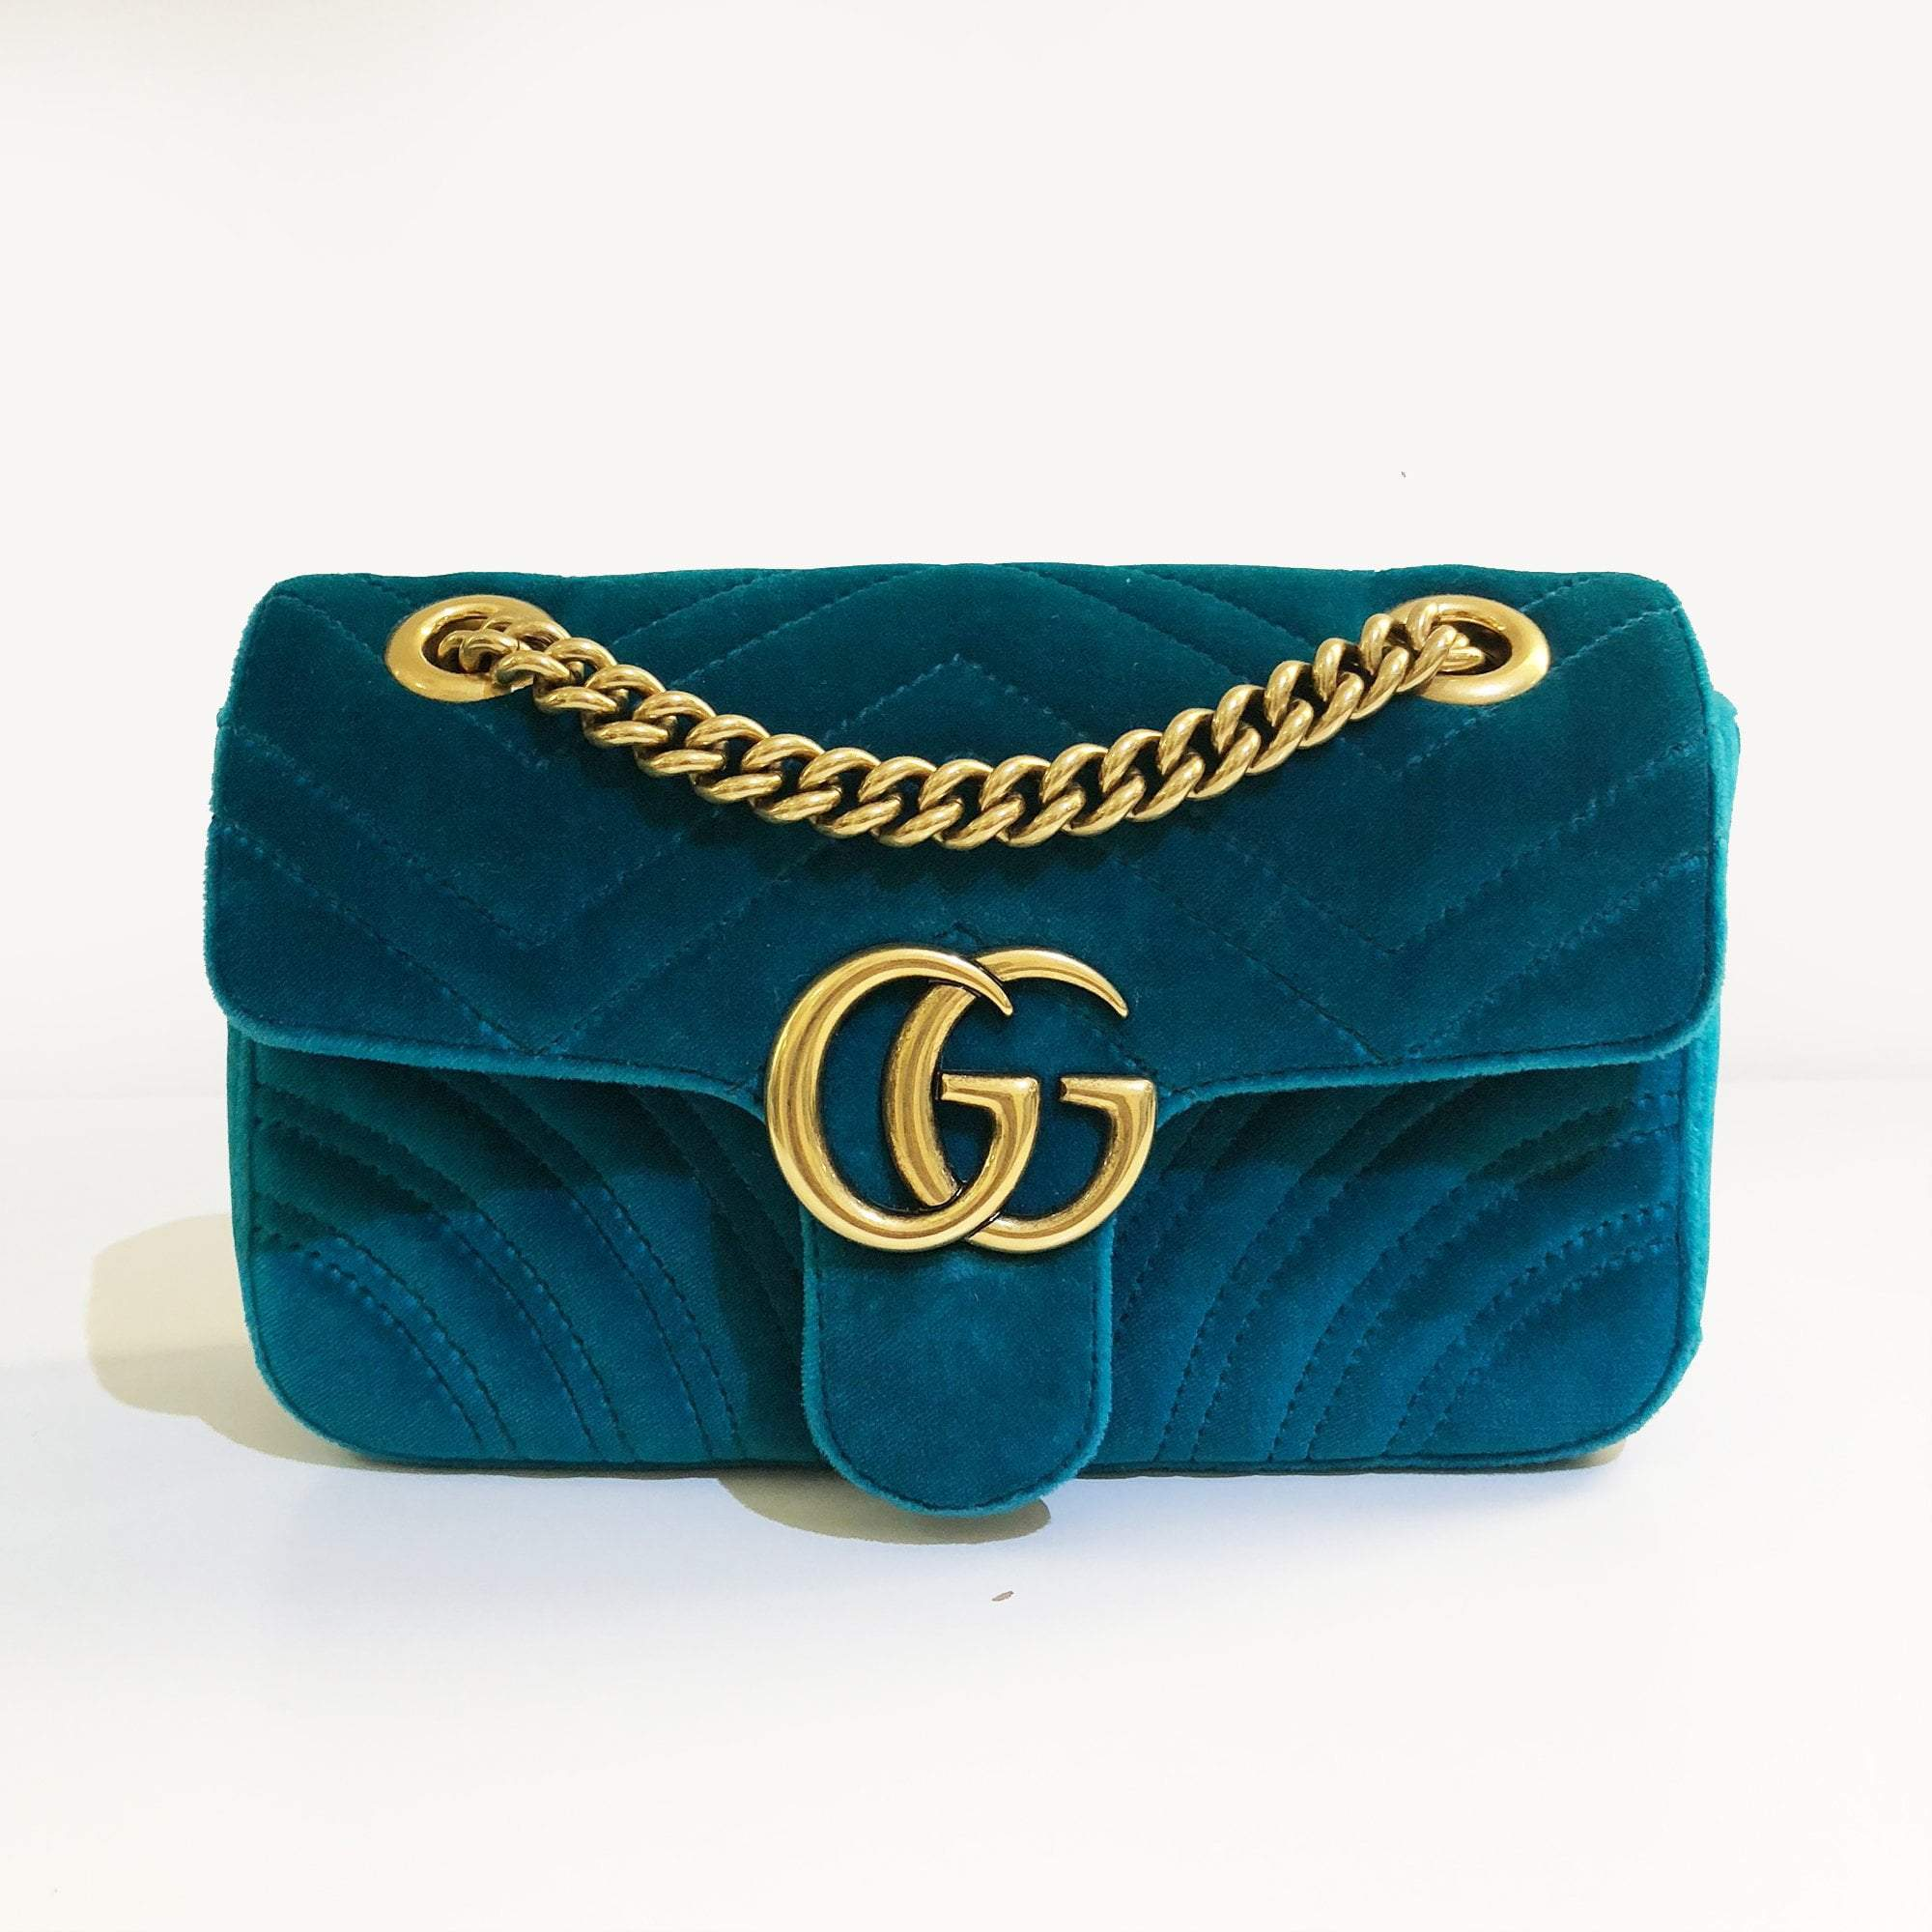 Gucci GG Mini Marmont velvet shoulder bag